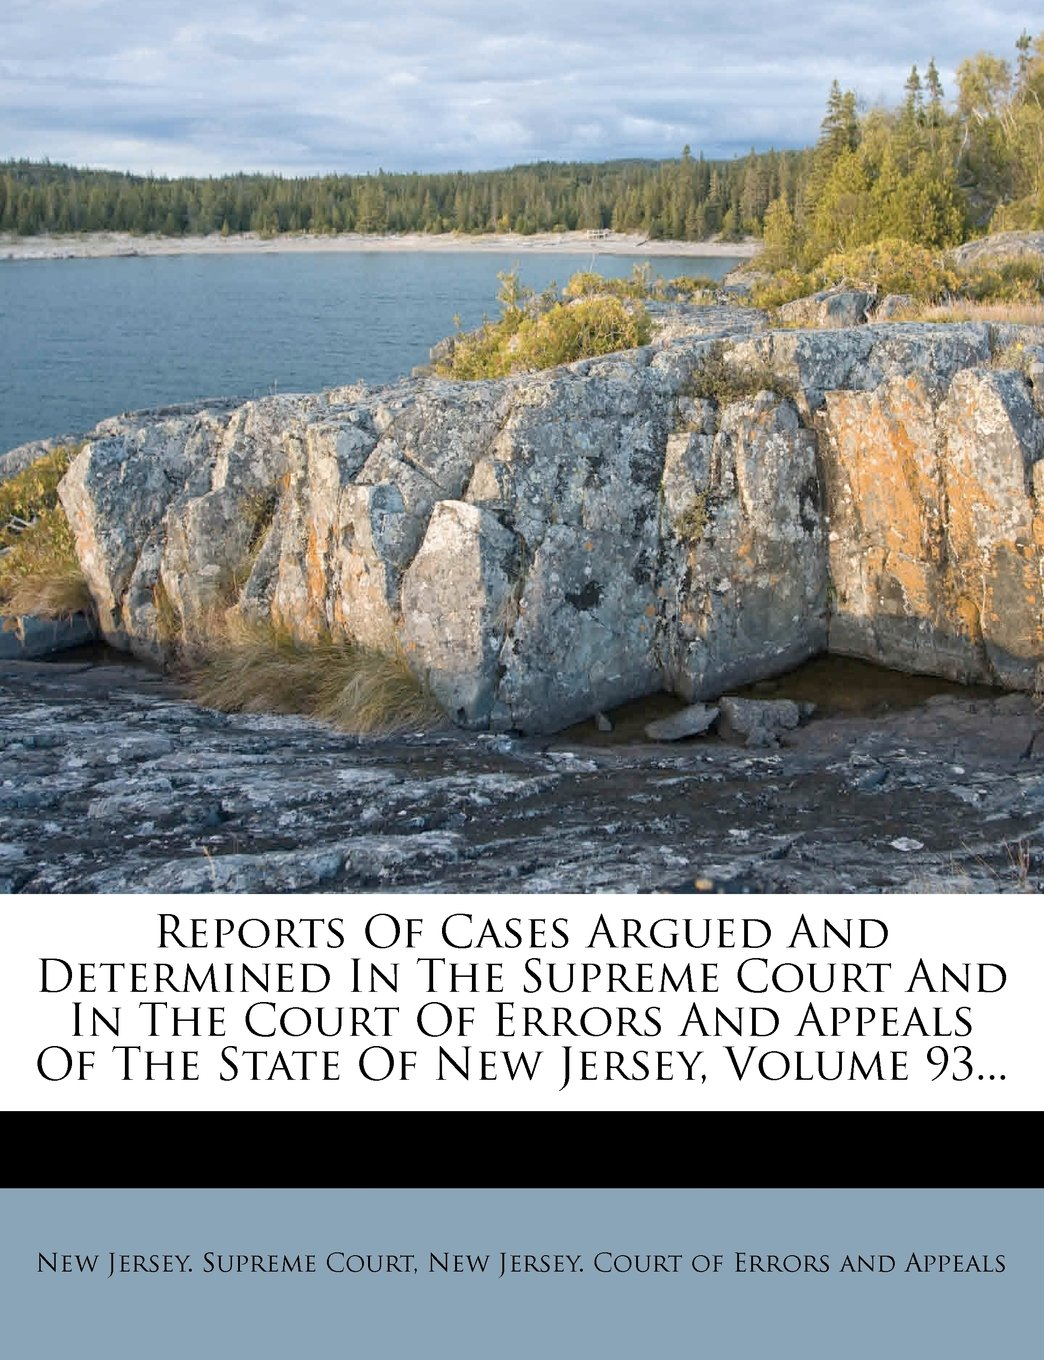 Reports Of Cases Argued And Determined In The Supreme Court And In The Court Of Errors And Appeals Of The State Of New Jersey, Volume 93... ebook